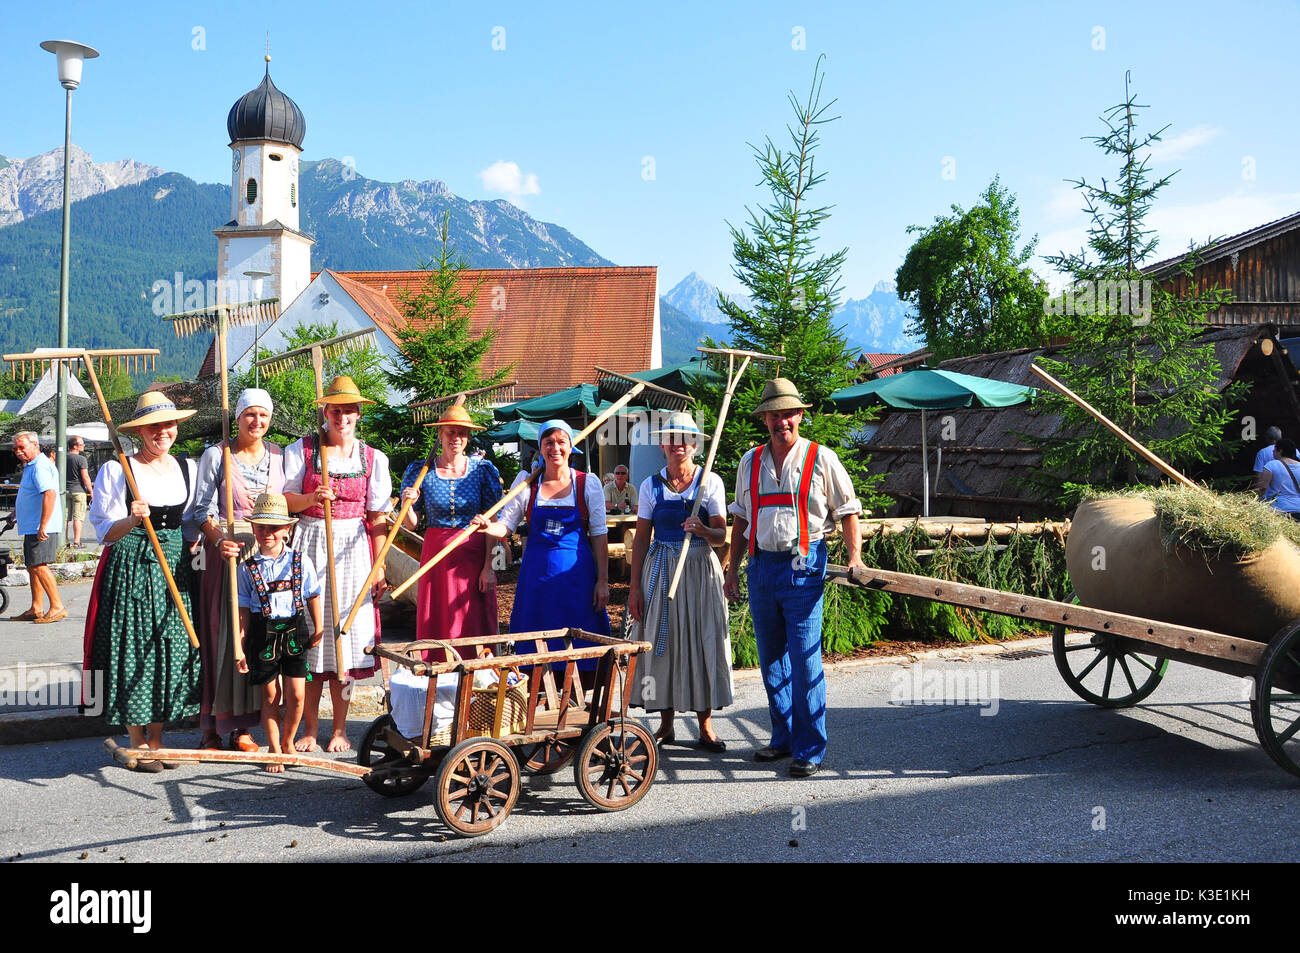 Deutsche Traditionen Wallgau Alp Stockfotos And Wallgau Alp Bilder Alamy